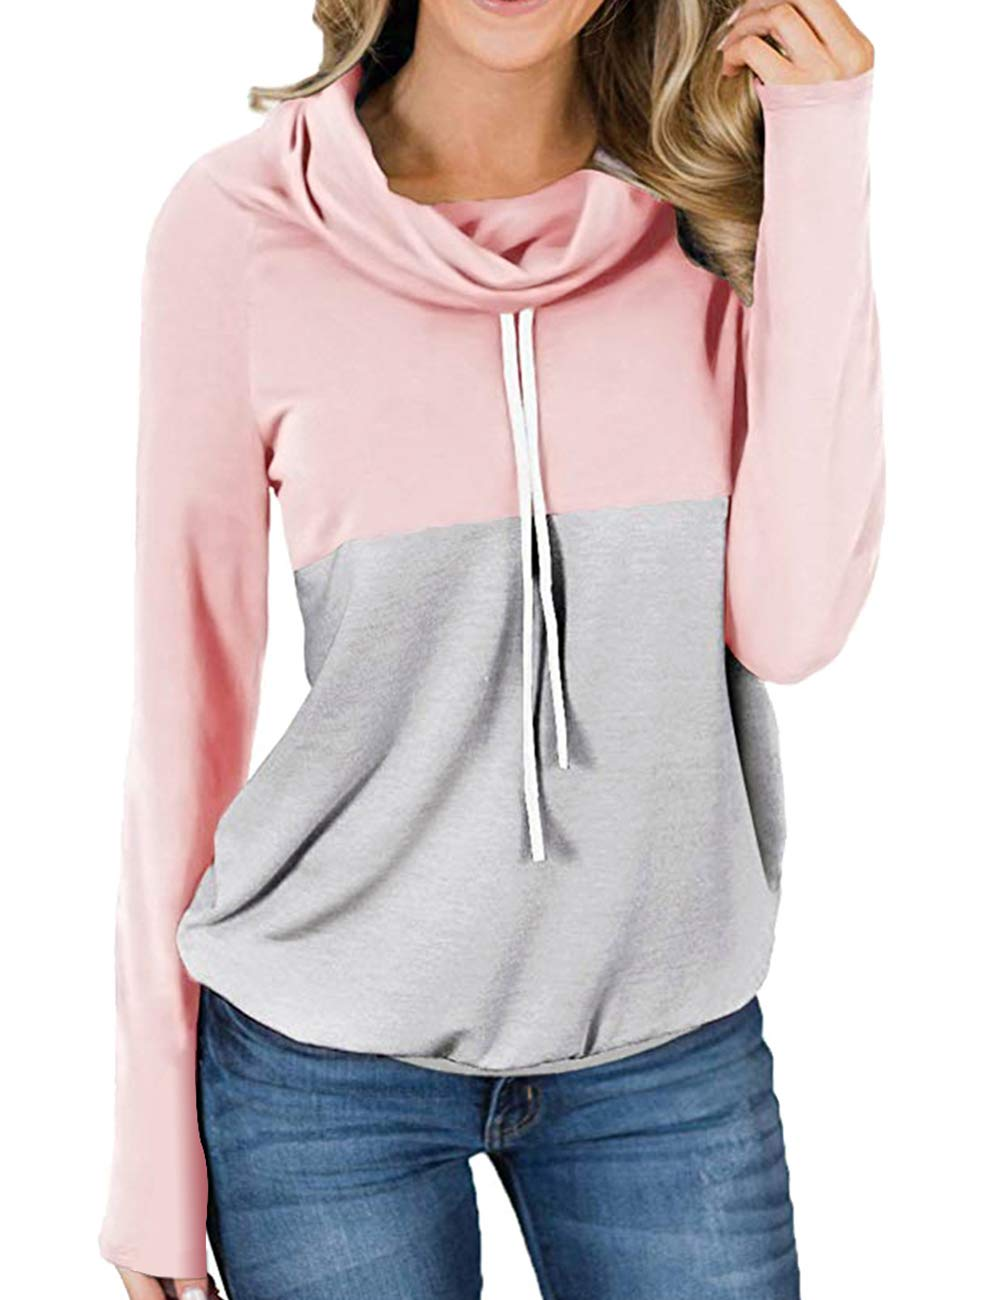 Promaska Pullover Sweatshirts for Women Long Sleeve, Juniors Casual Cowl Neck Hoodies Tops with Pockets Banded Hem Patchwork Cotton Tunic Shirts Pink L